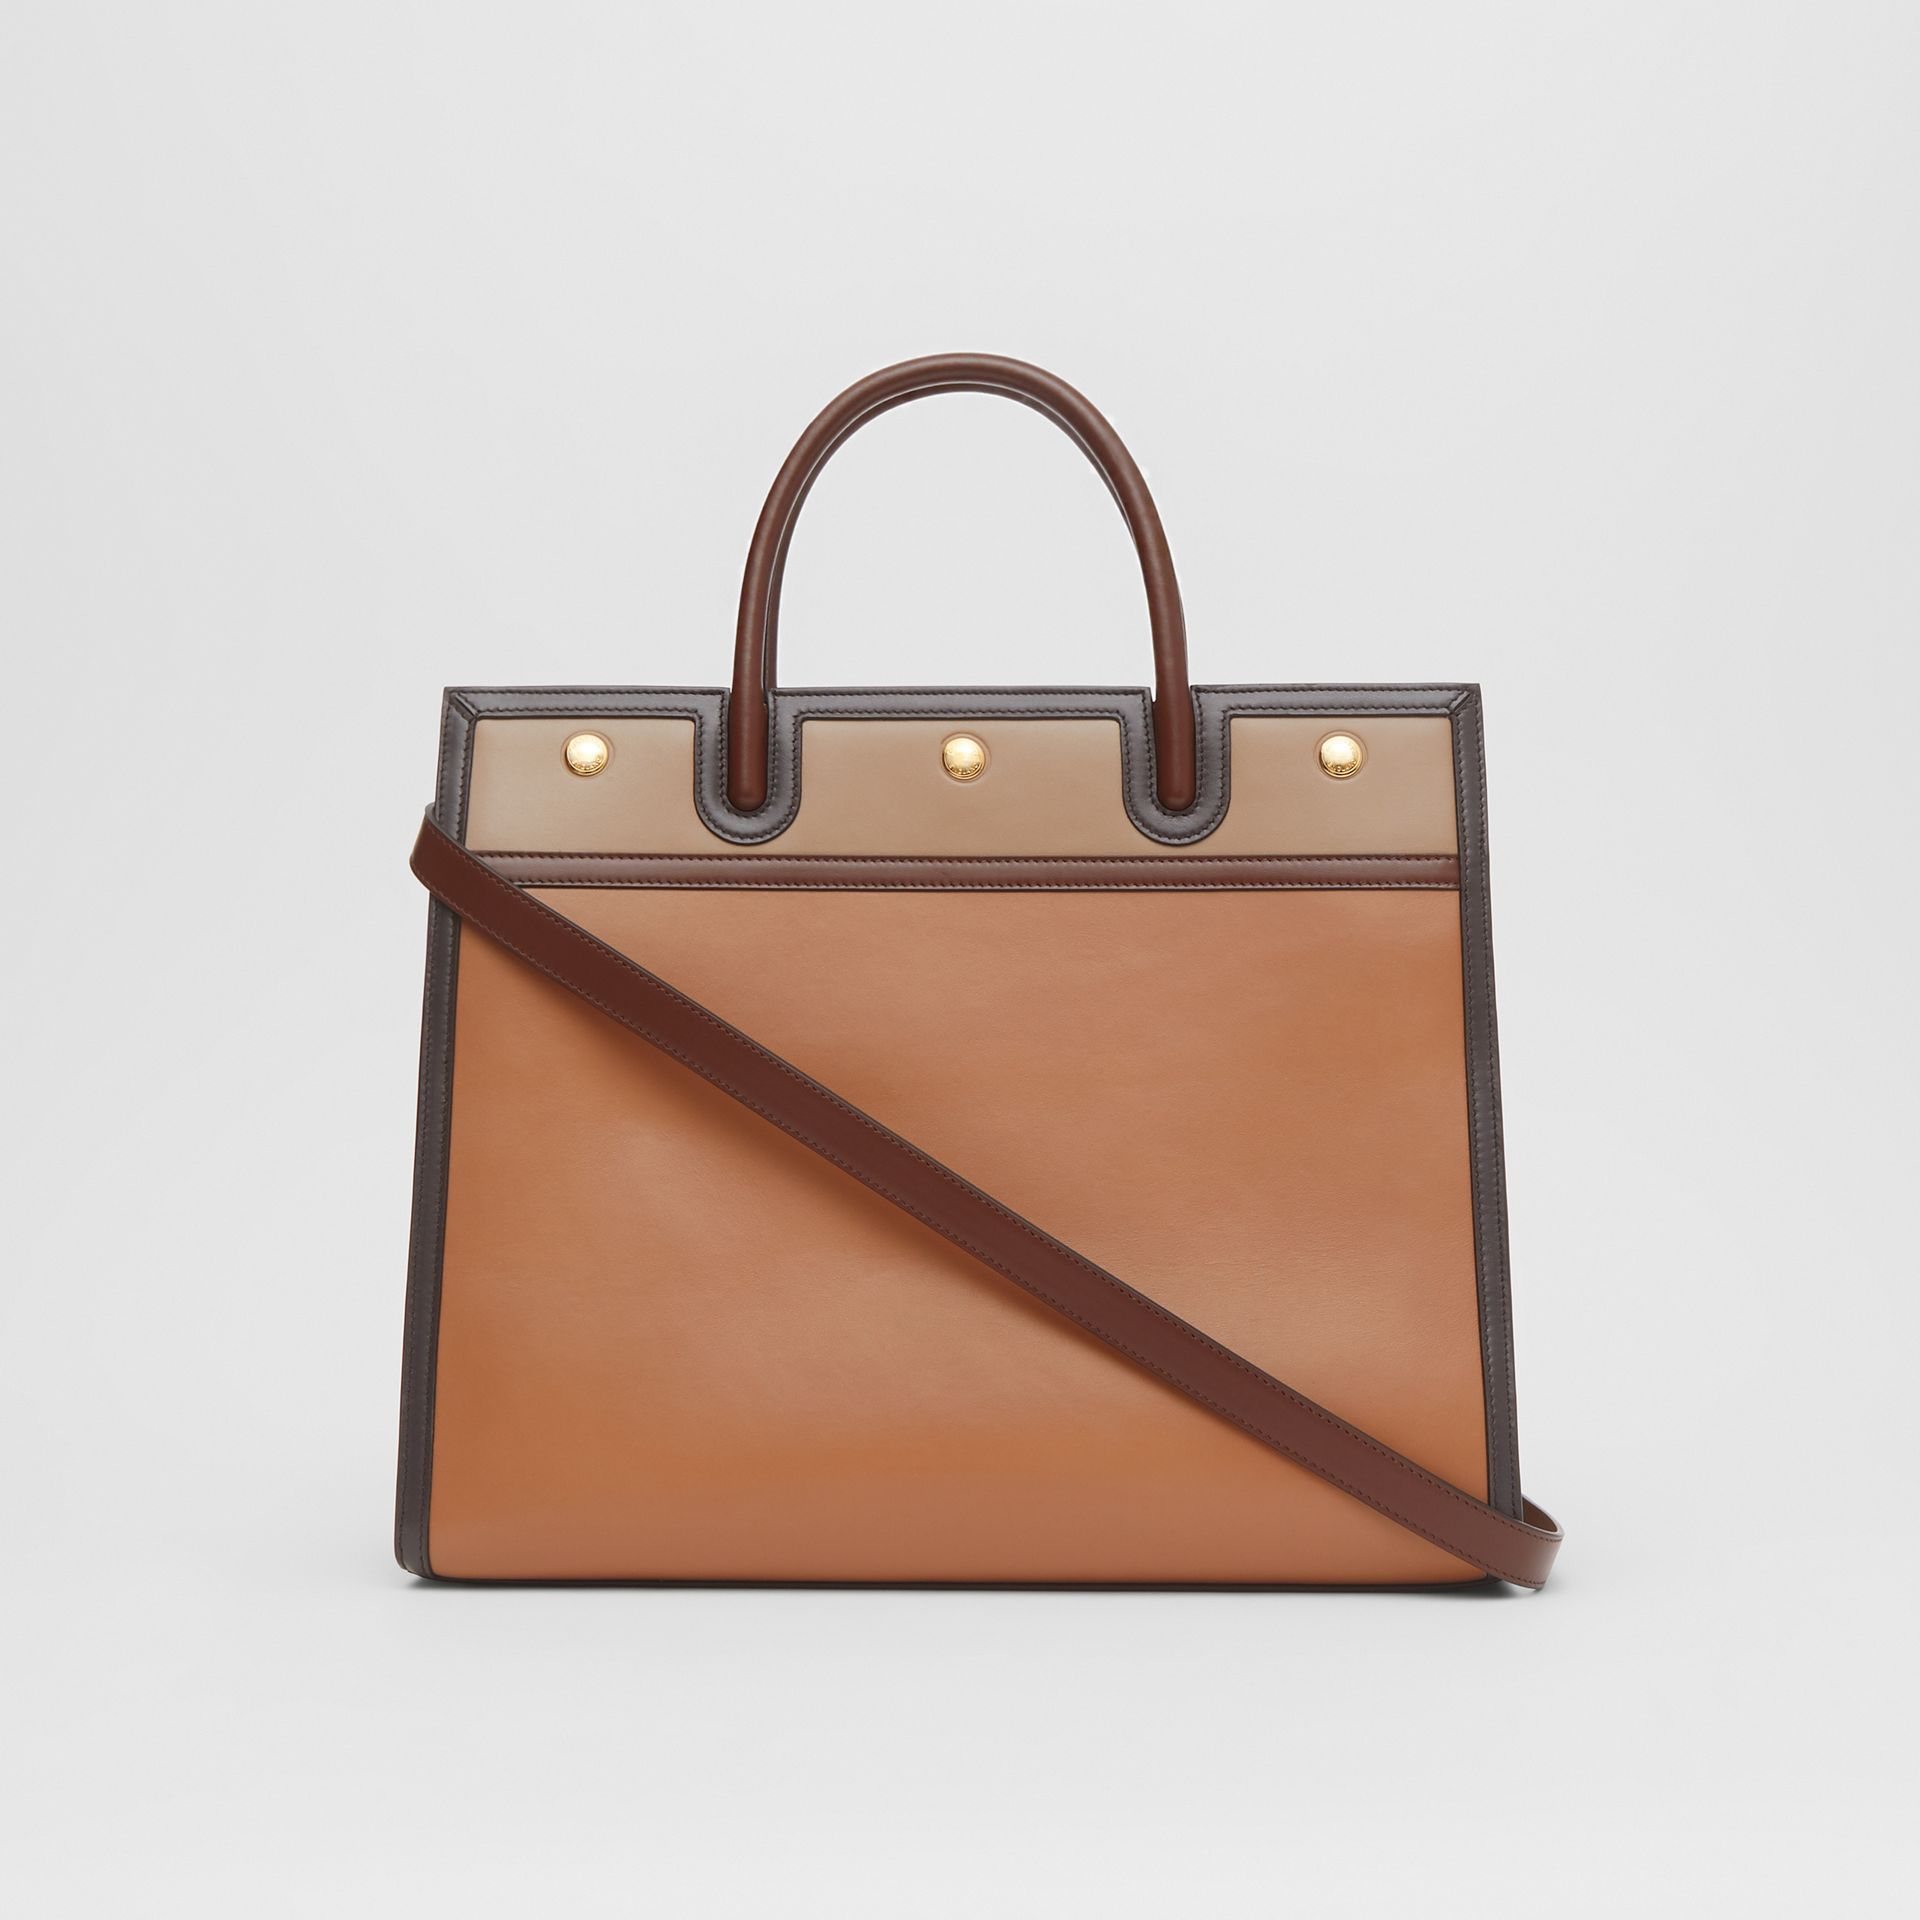 Medium Colour Block Leather Two-handle Title Bag in Soft Fawn - Women | Burberry United States - gallery image 7